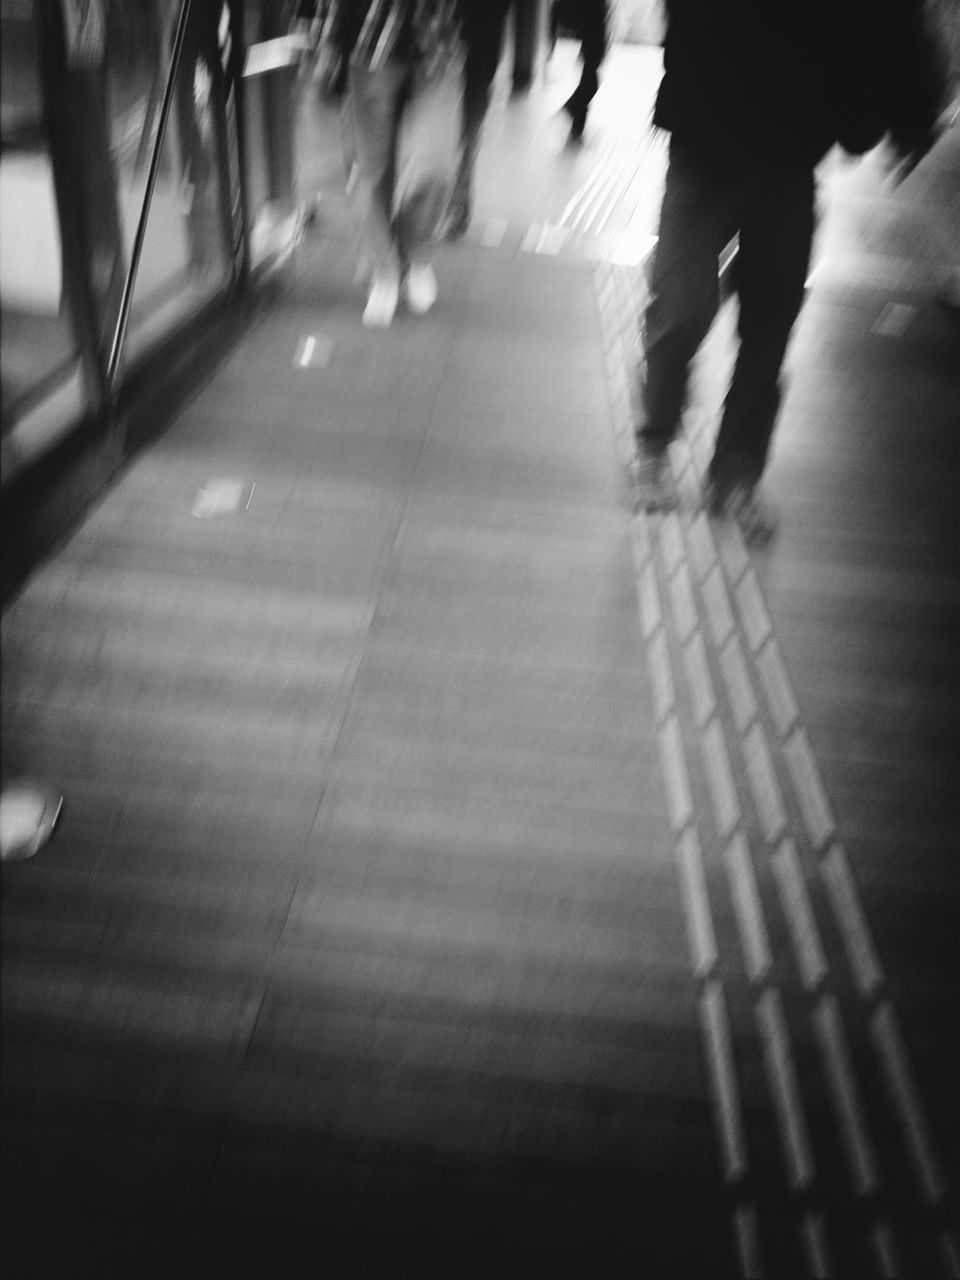 blurred motion, walking, real people, motion, speed, low section, men, large group of people, day, indoors, women, lifestyles, pedestrian, defocused, city, adult, people